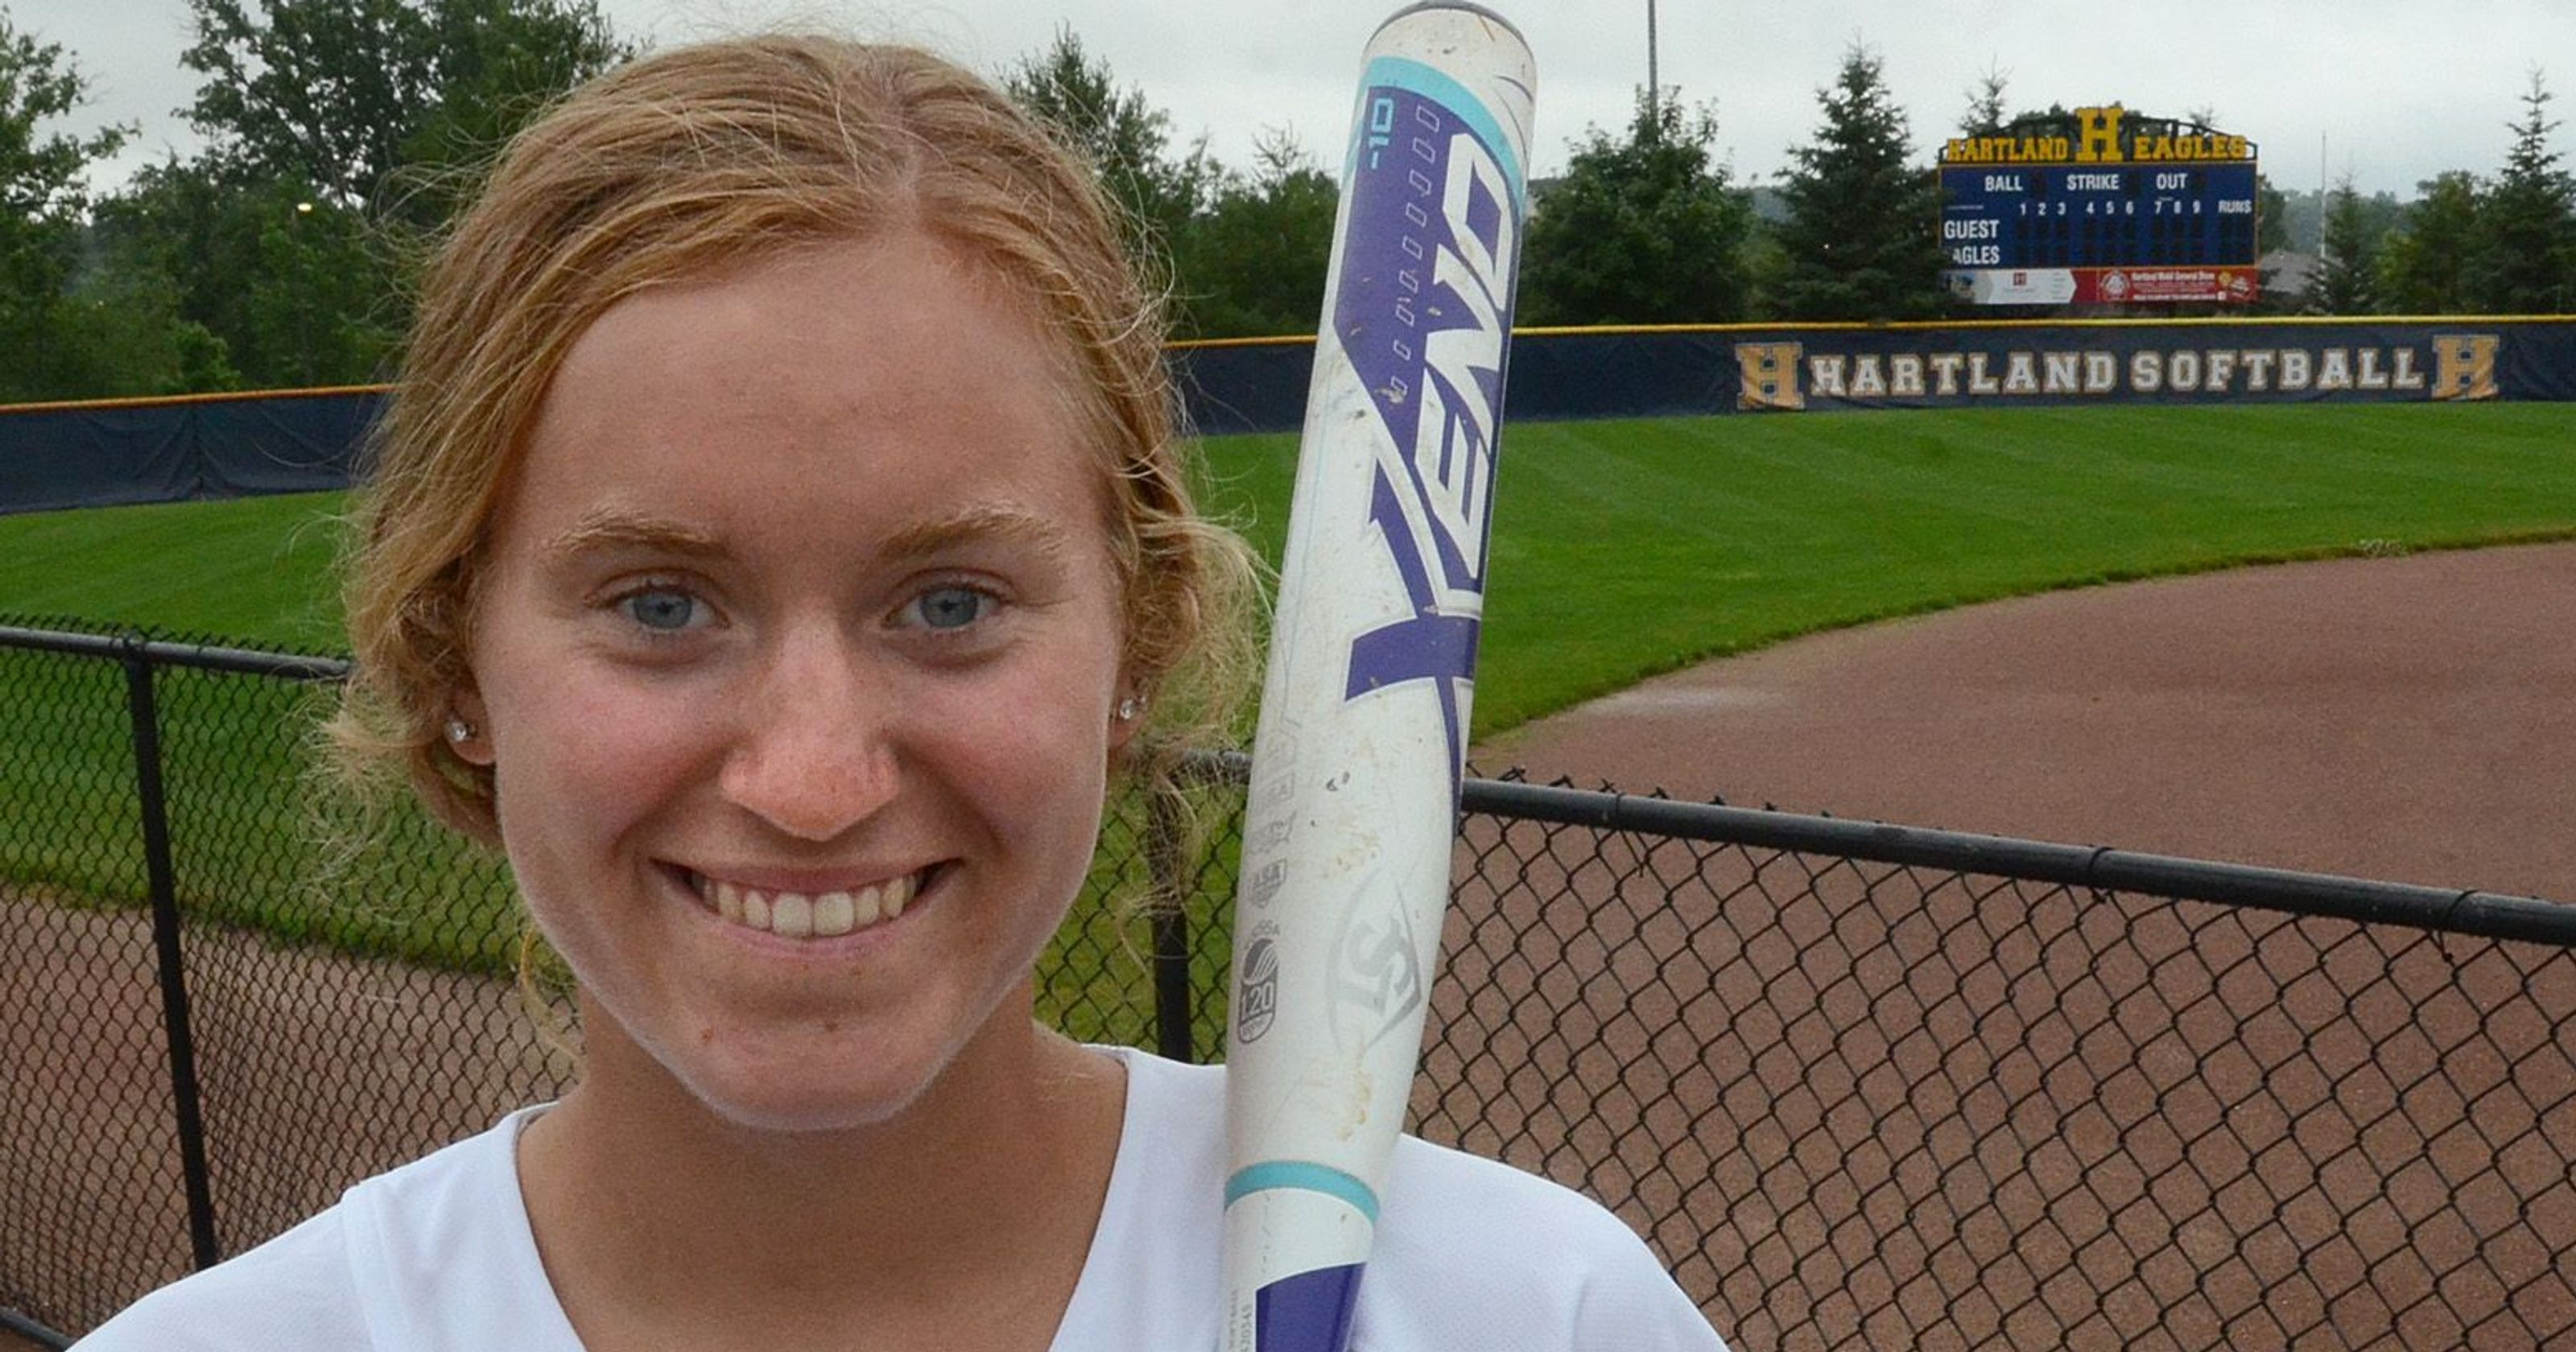 Madelin Skene to Play in All Star Game July 18